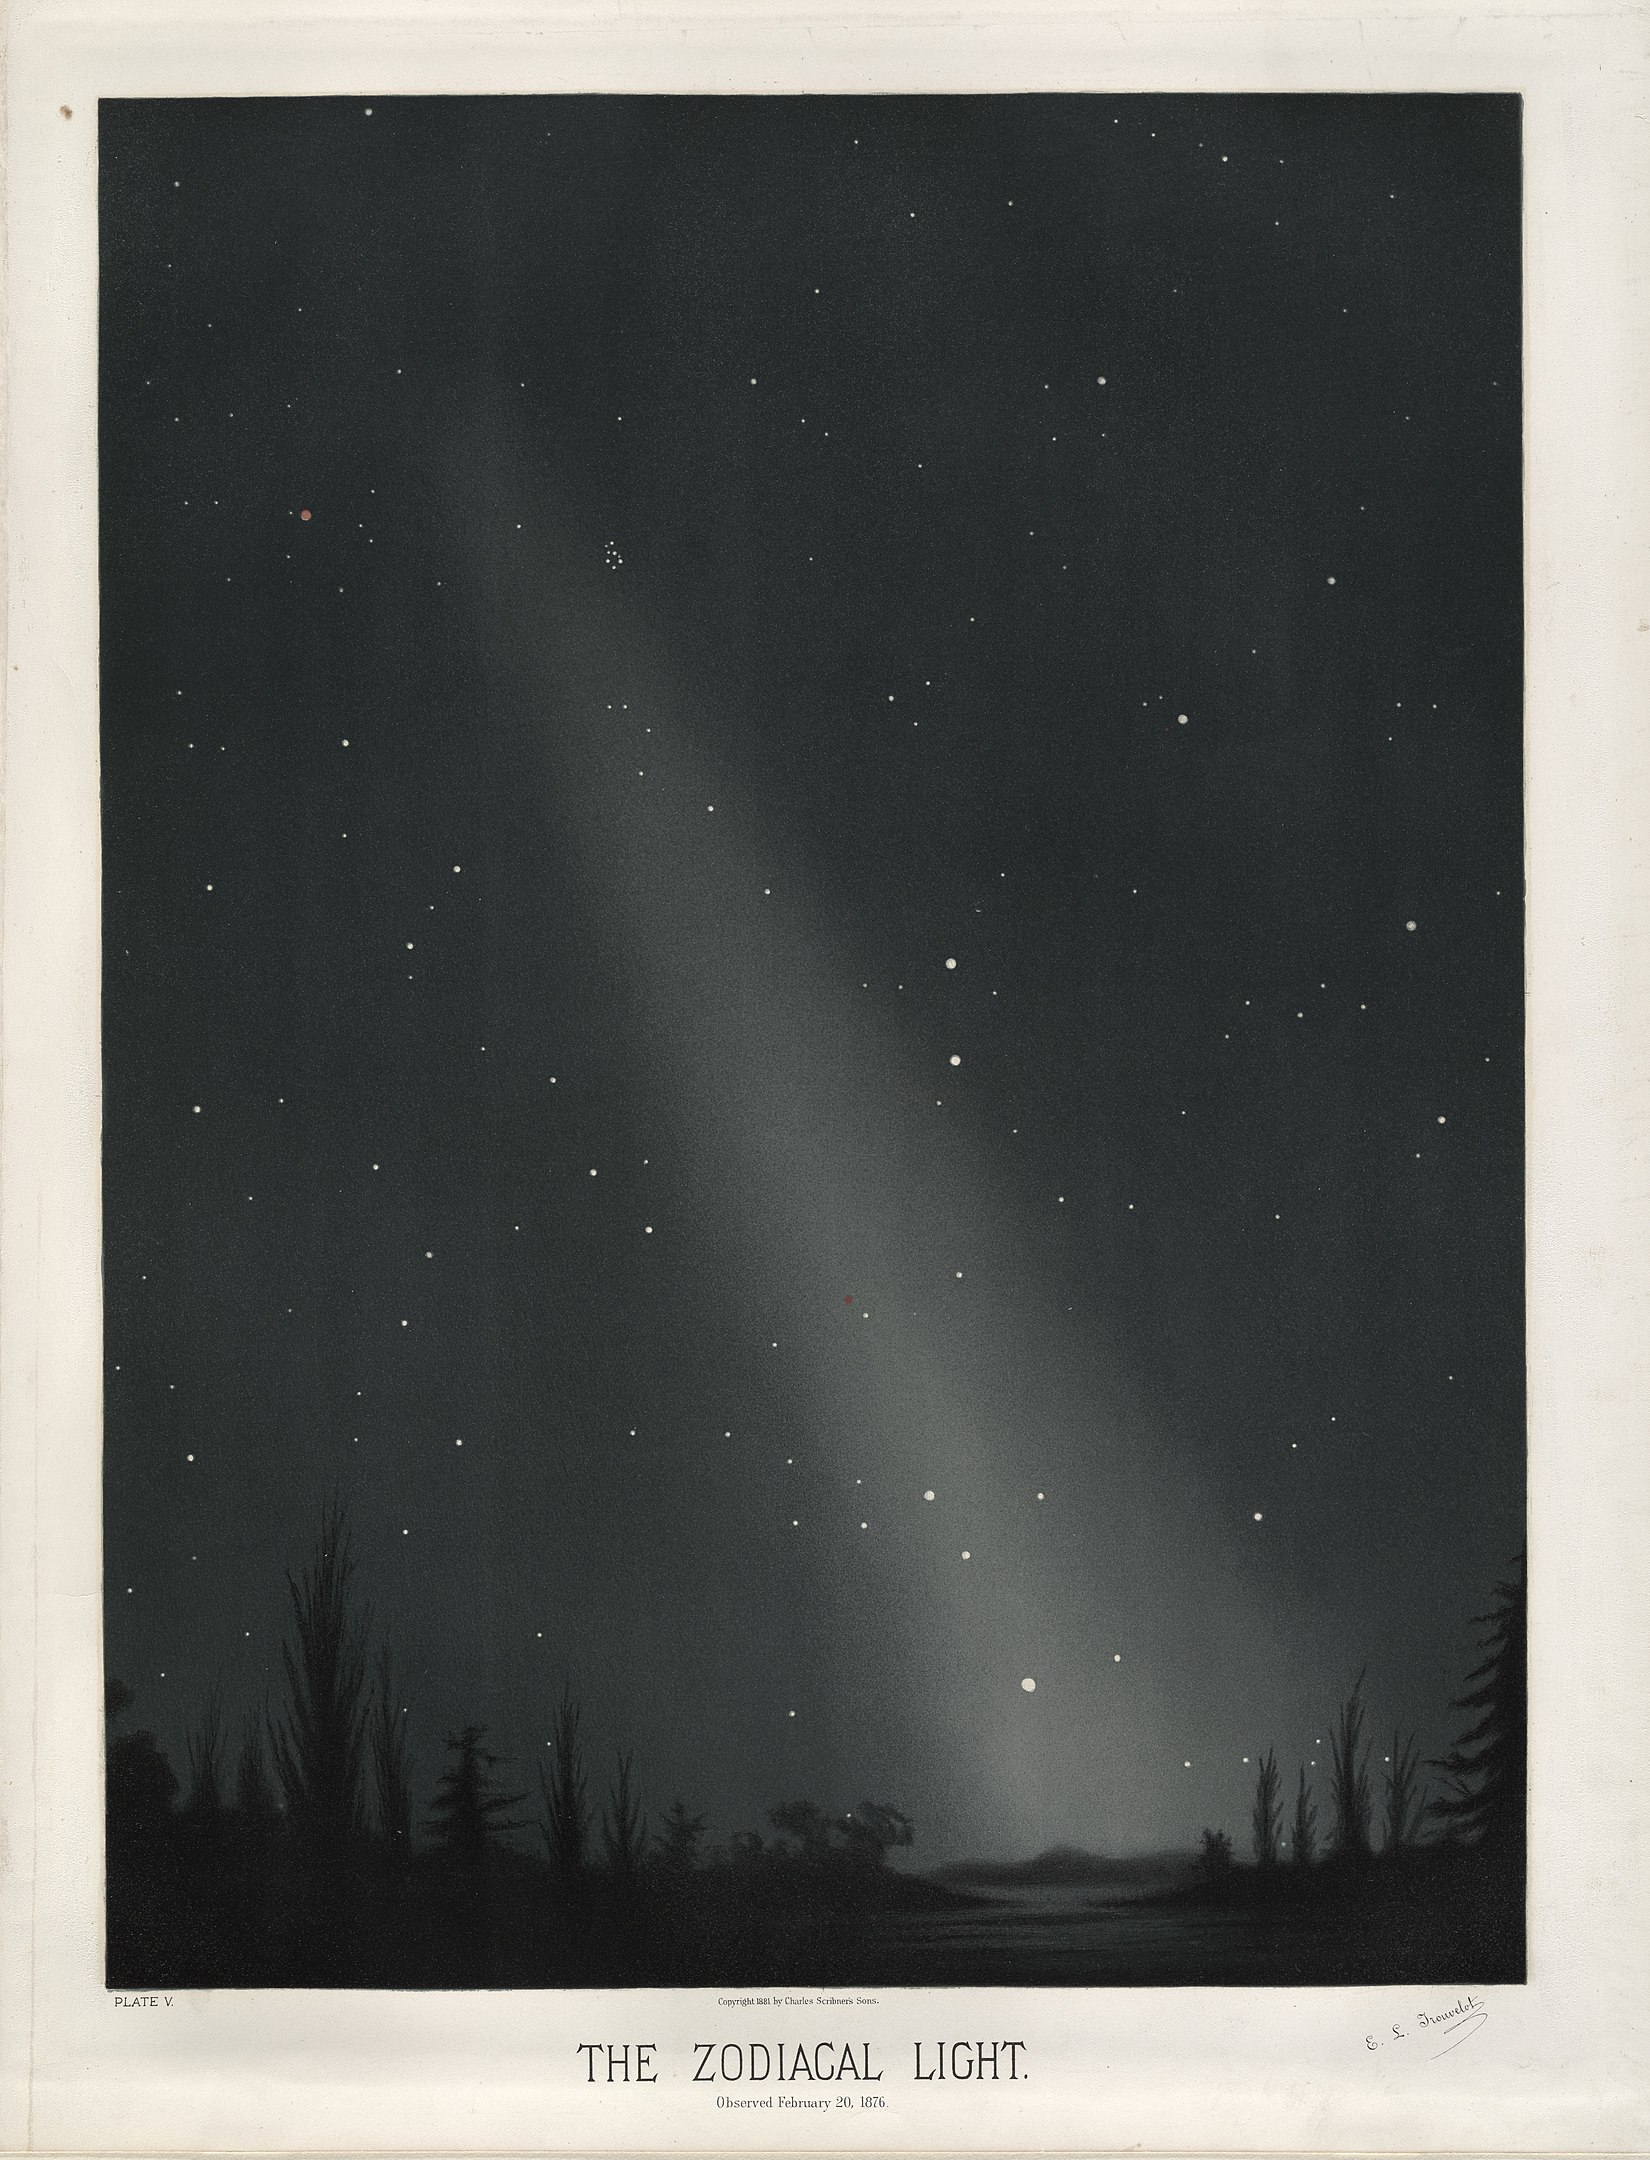 Zodiacal light by E.Trouvelot, 1876